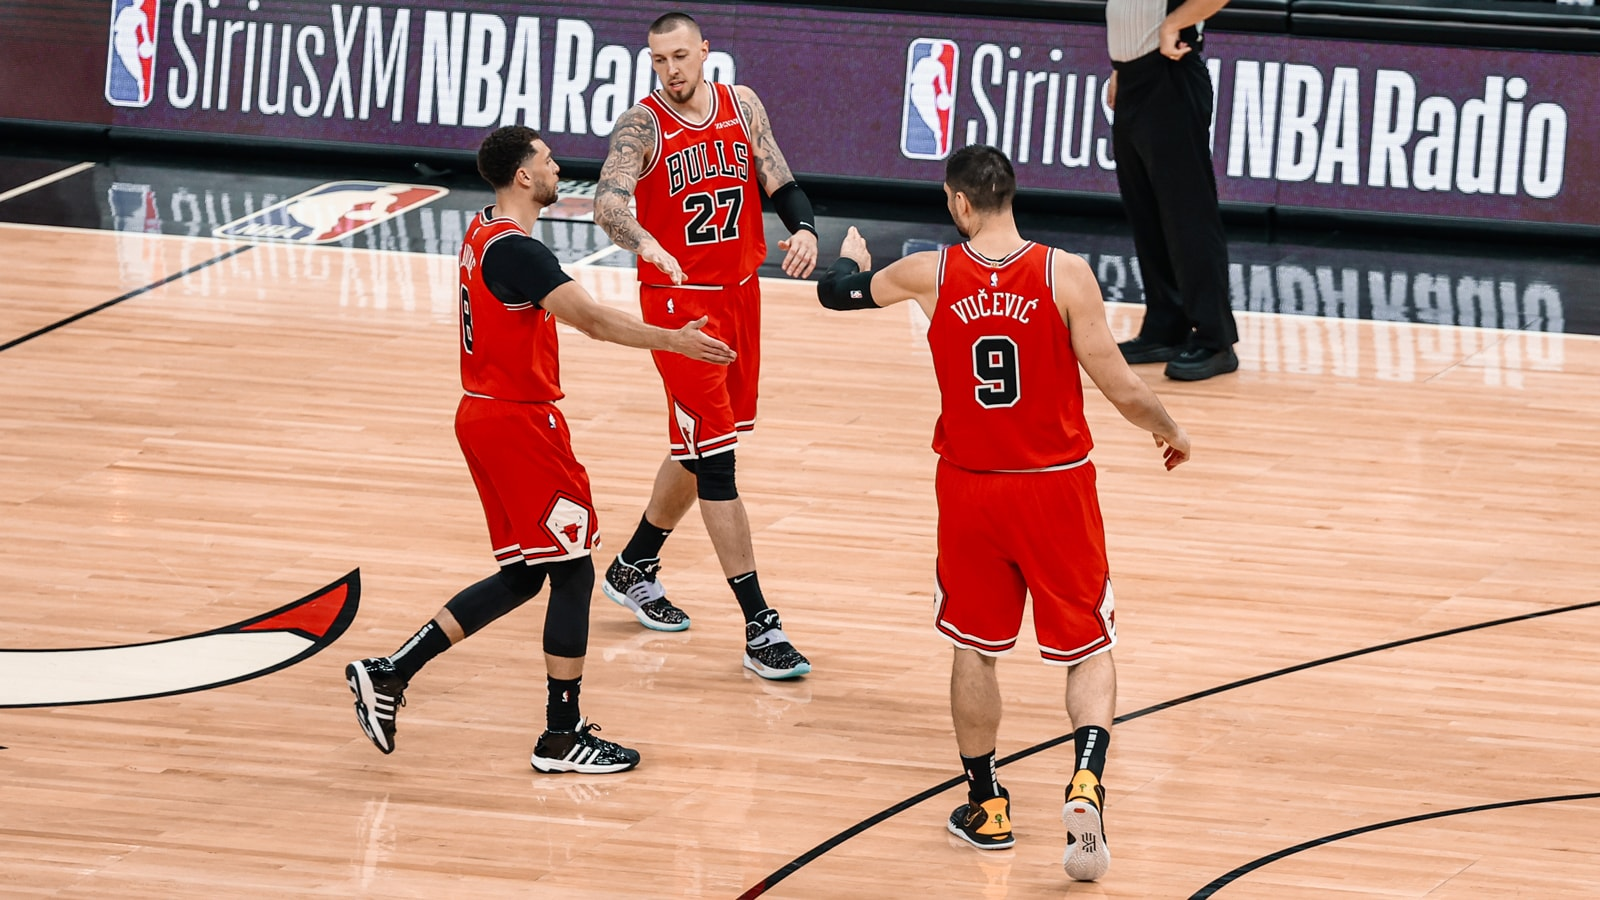 Zach LaVine is greeted by Daniel Theis and Nikola Vucevic on the United Center floor